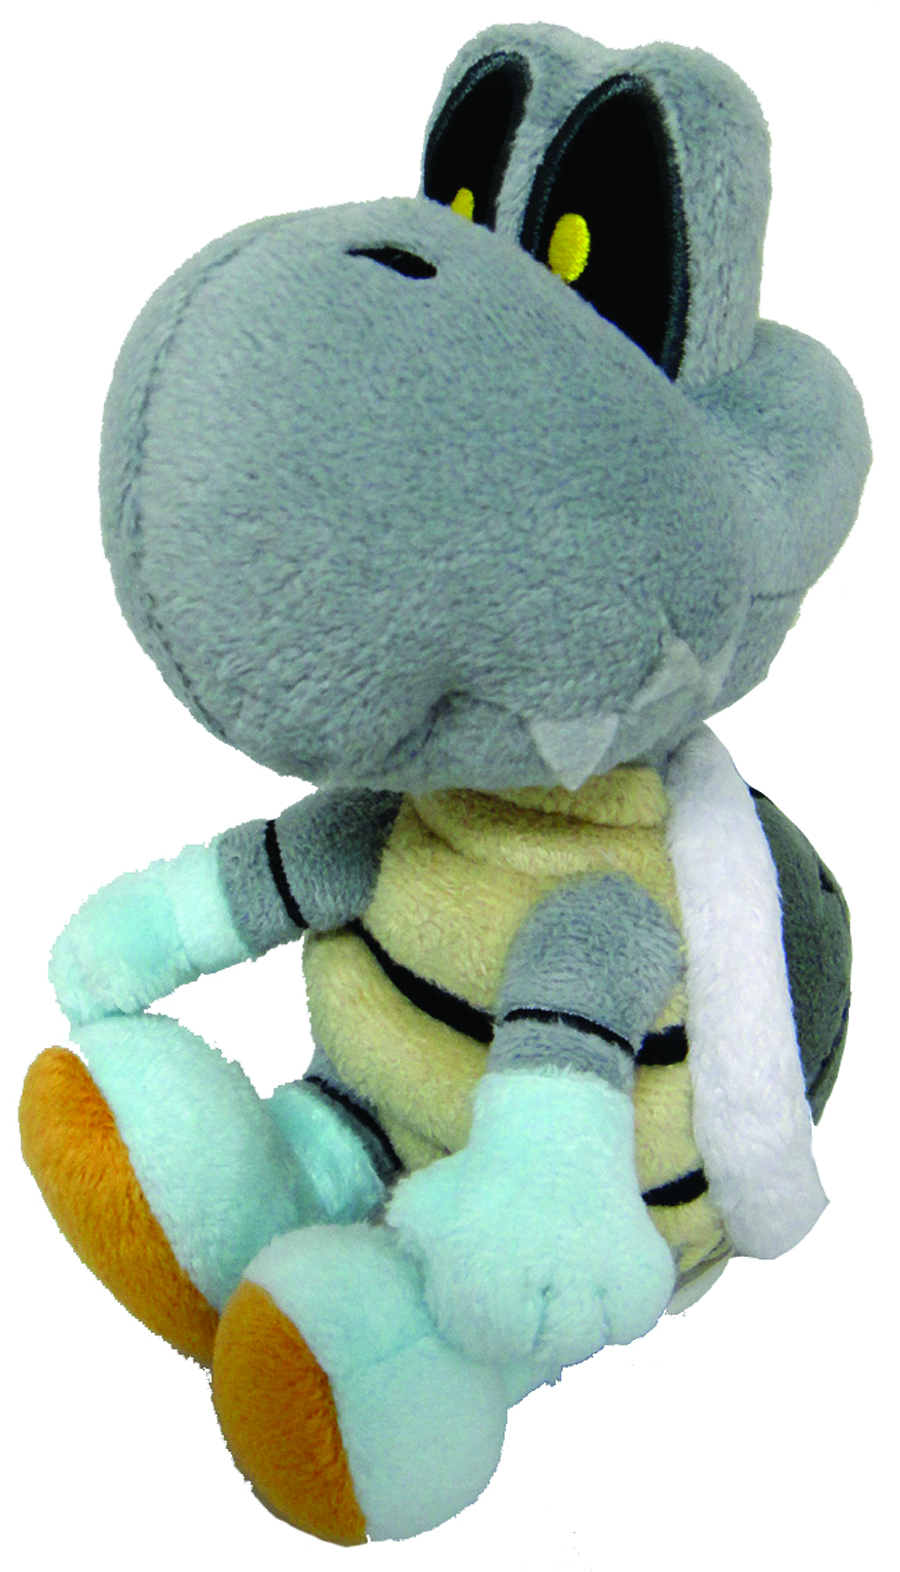 SUPER MARIO BROS DRY BONES 6IN PLUSH